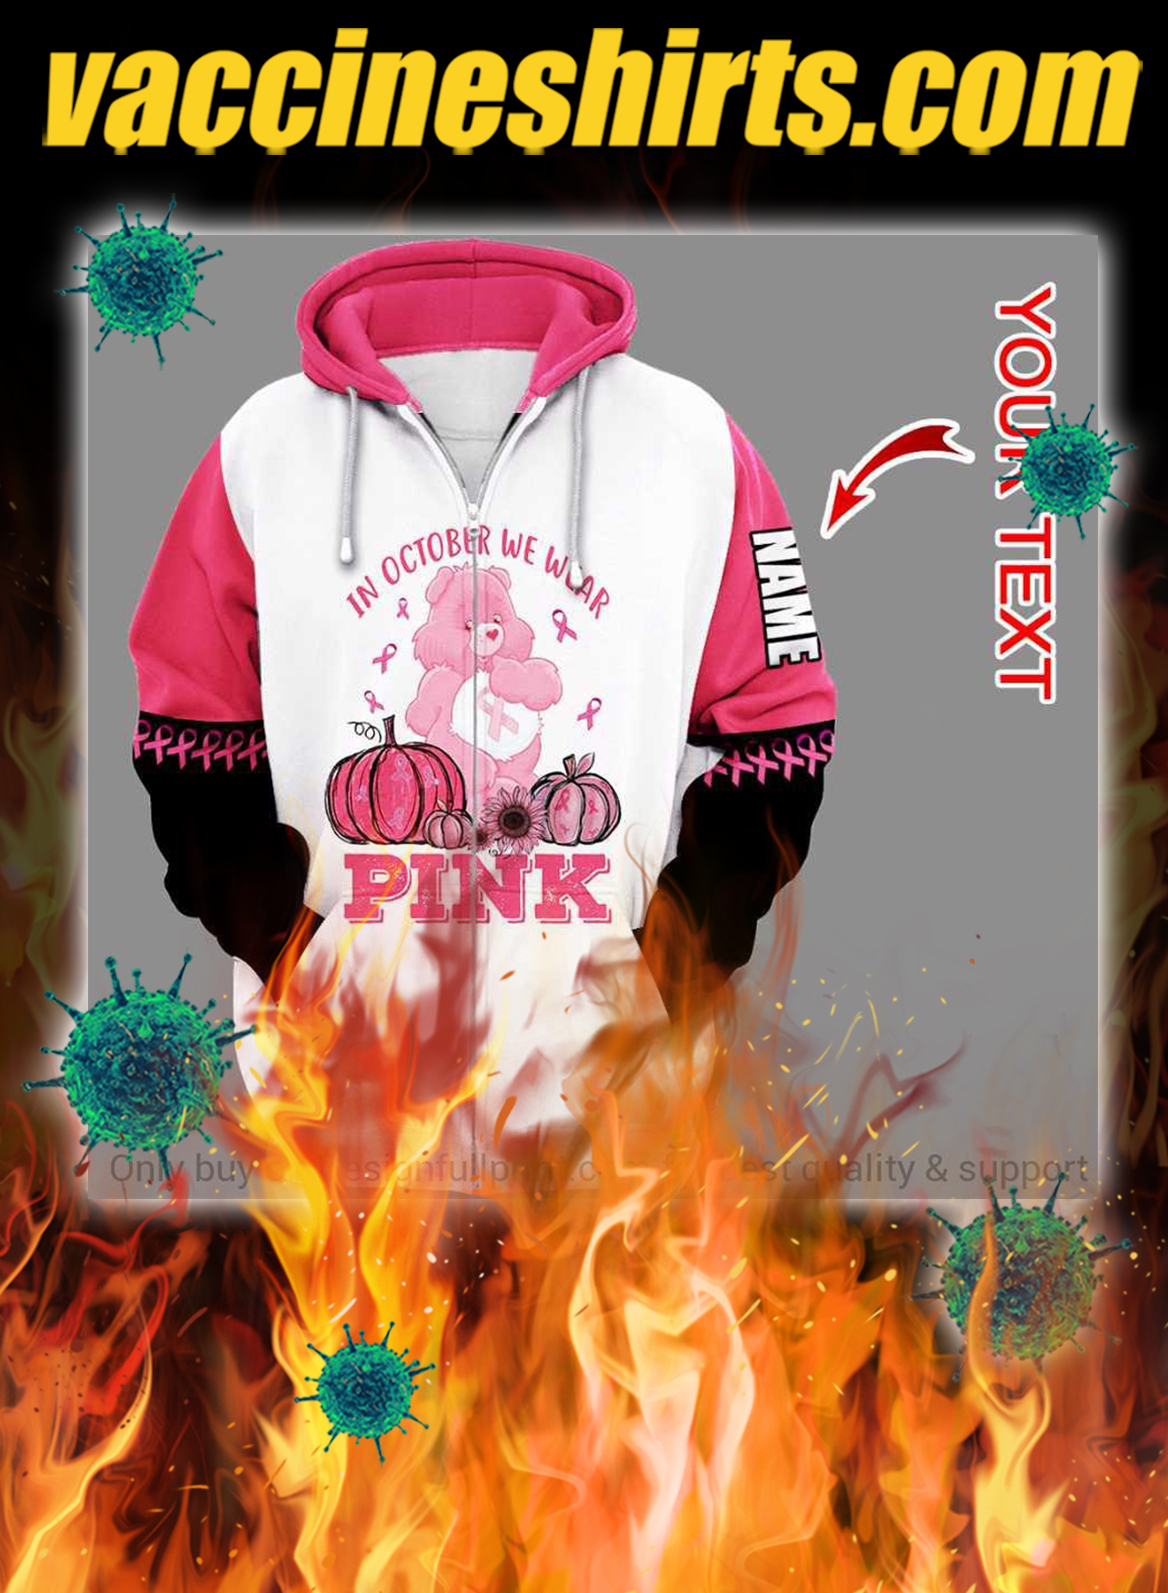 Personalized breast cancer bear in october we wear pink 3d zip hoodie